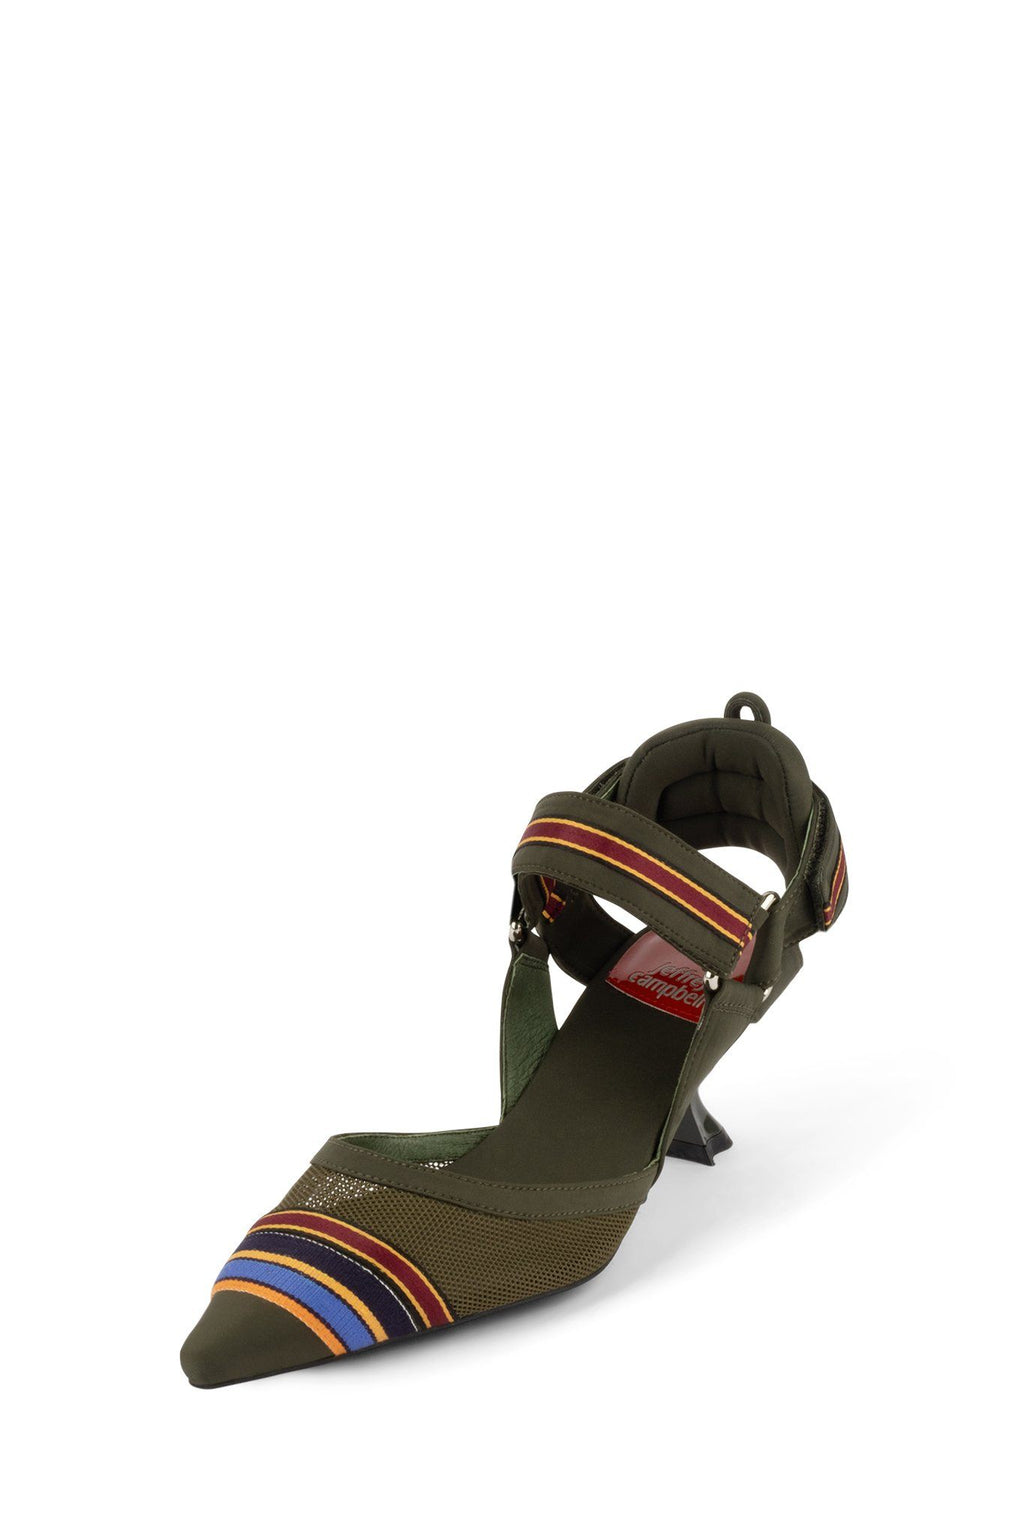 ATROPHY-2 - Jeffrey Campbell